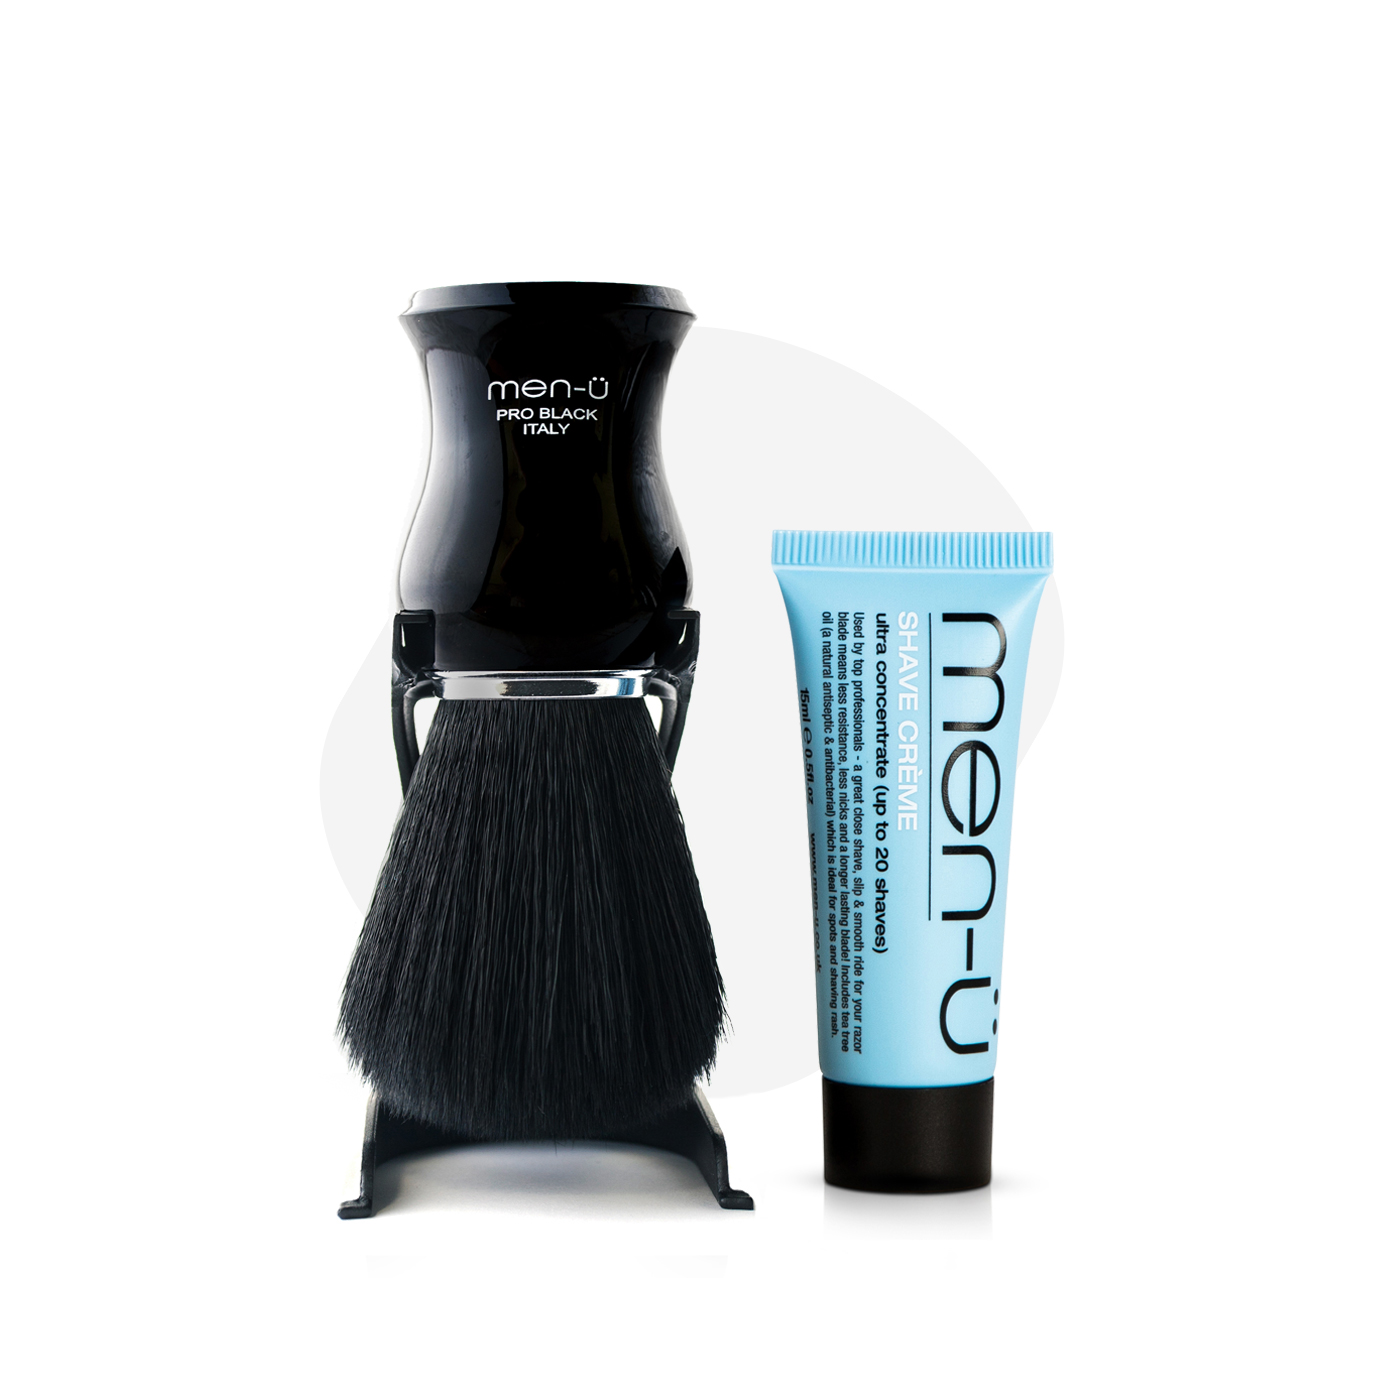 Pro Black Shaving Brush